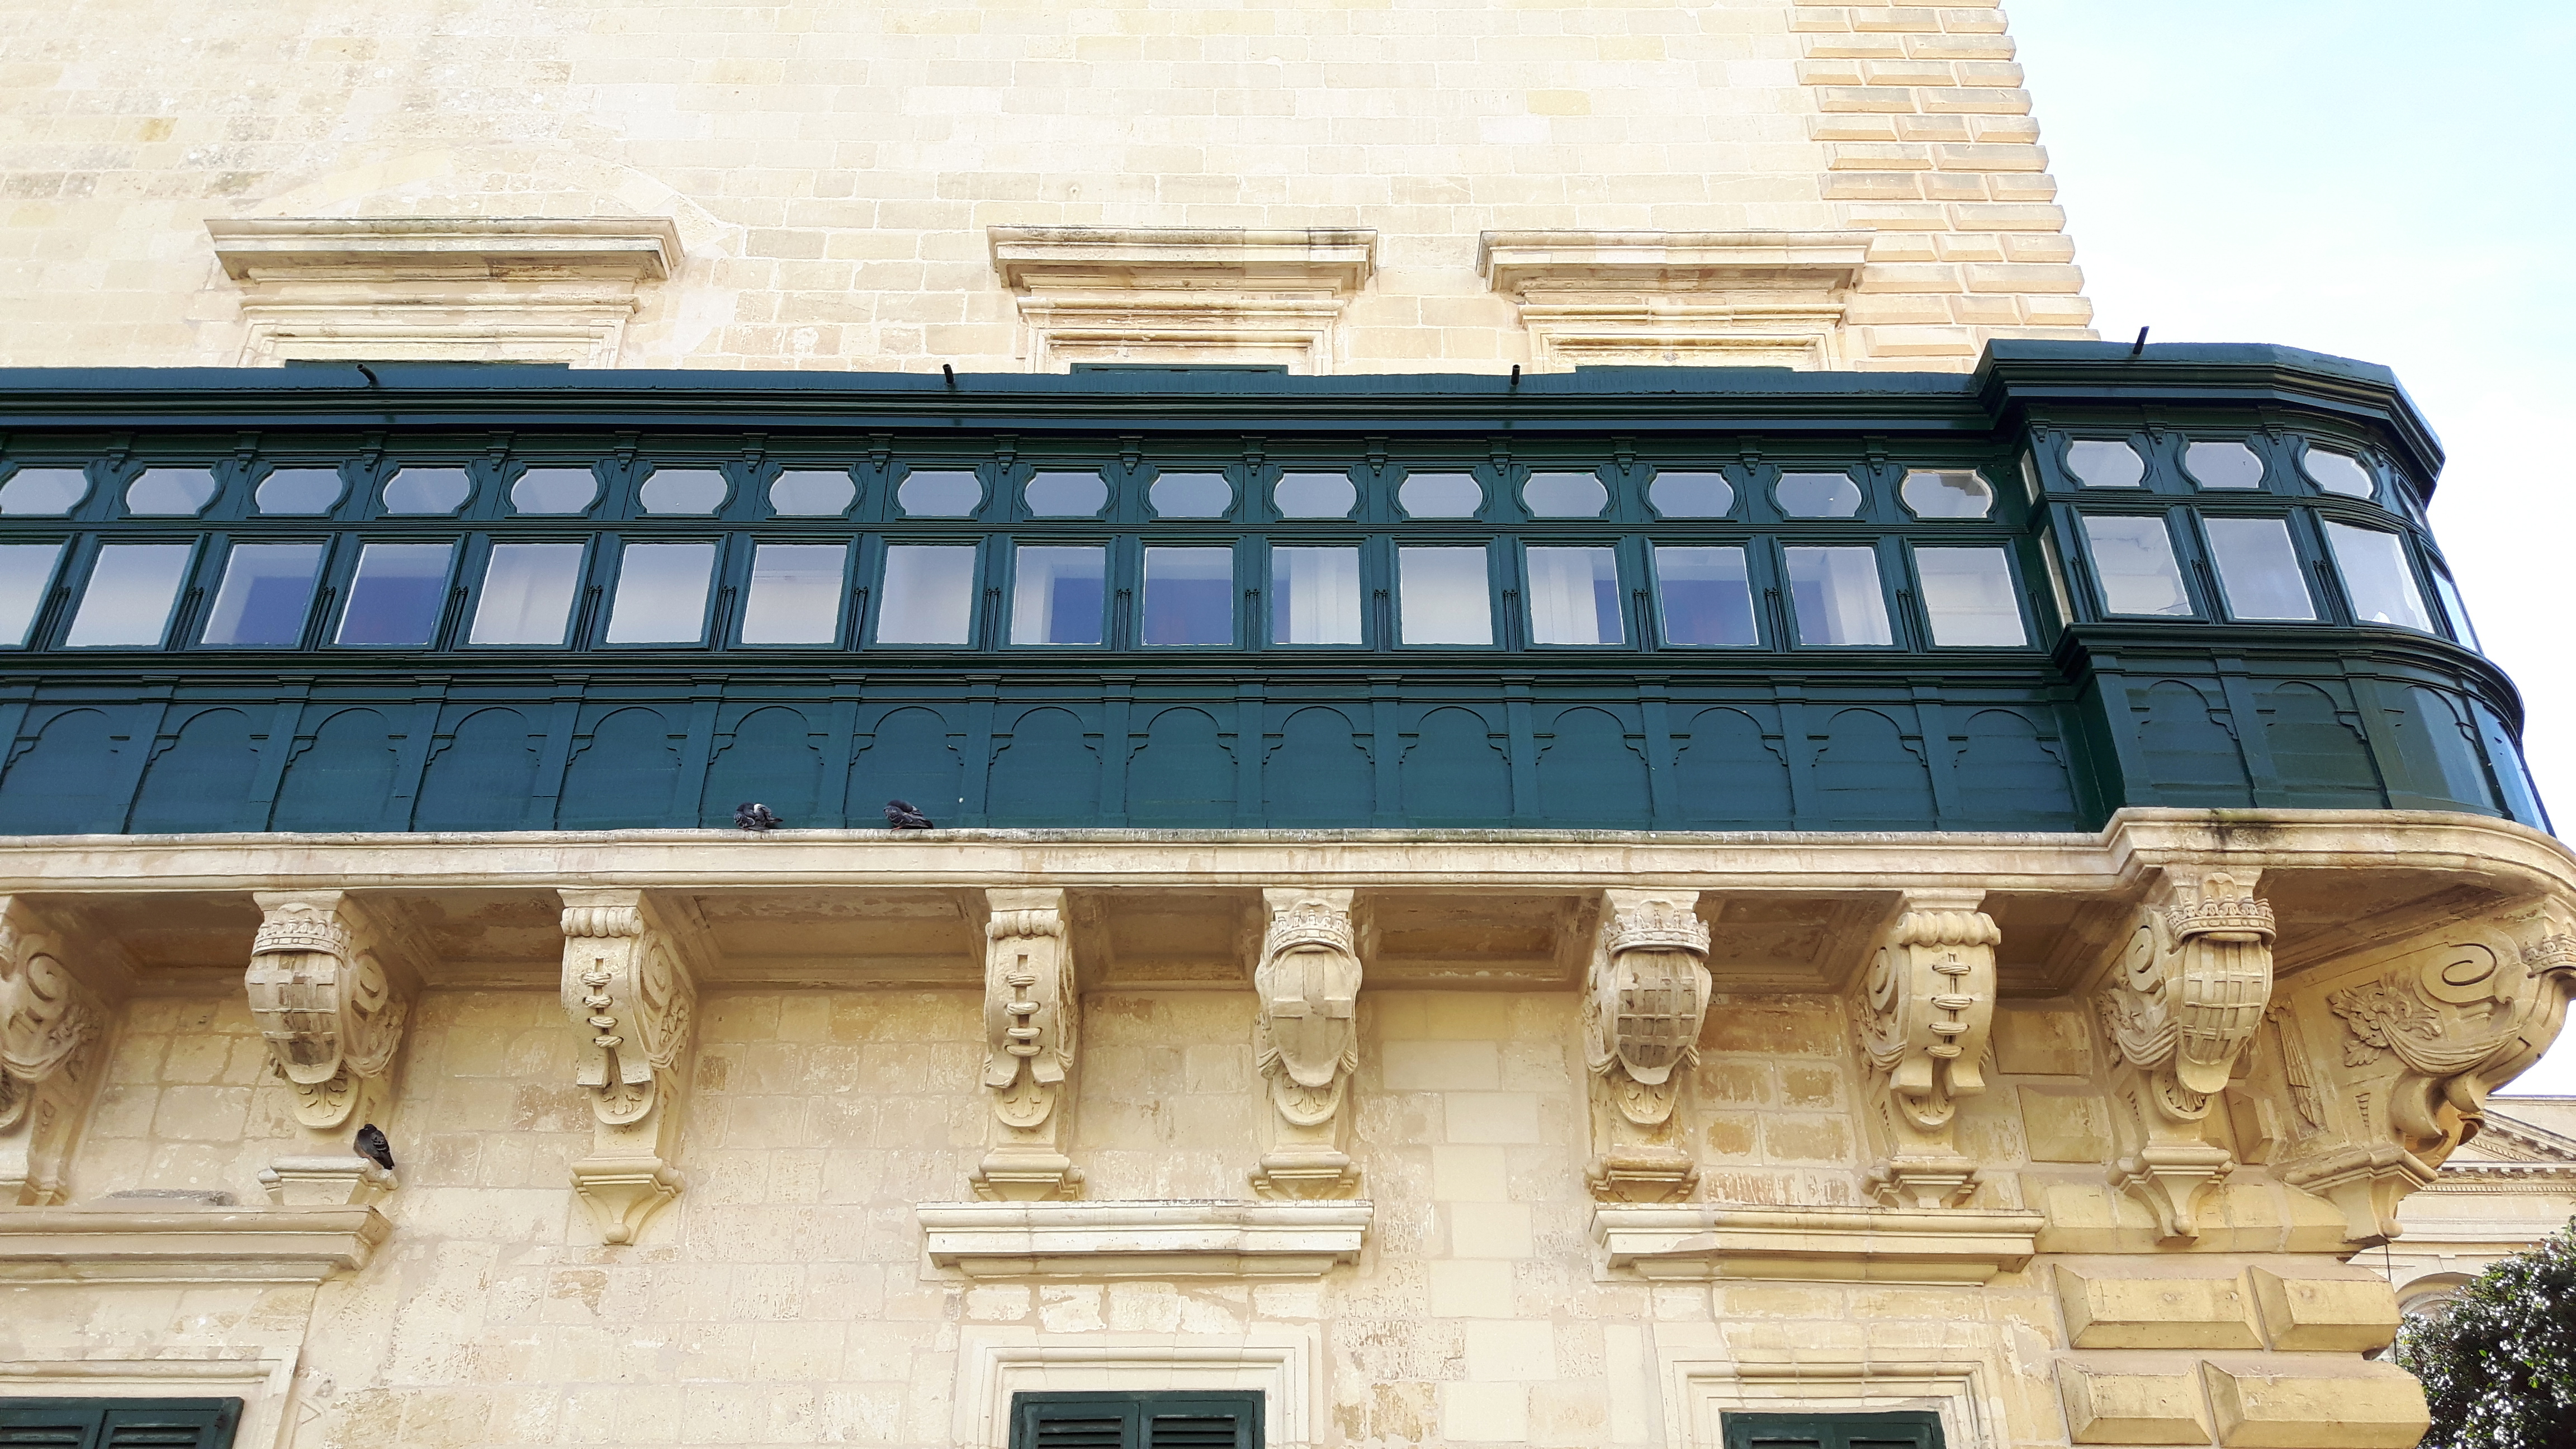 Colourful_Wooden_Balconies_Malta_Europe